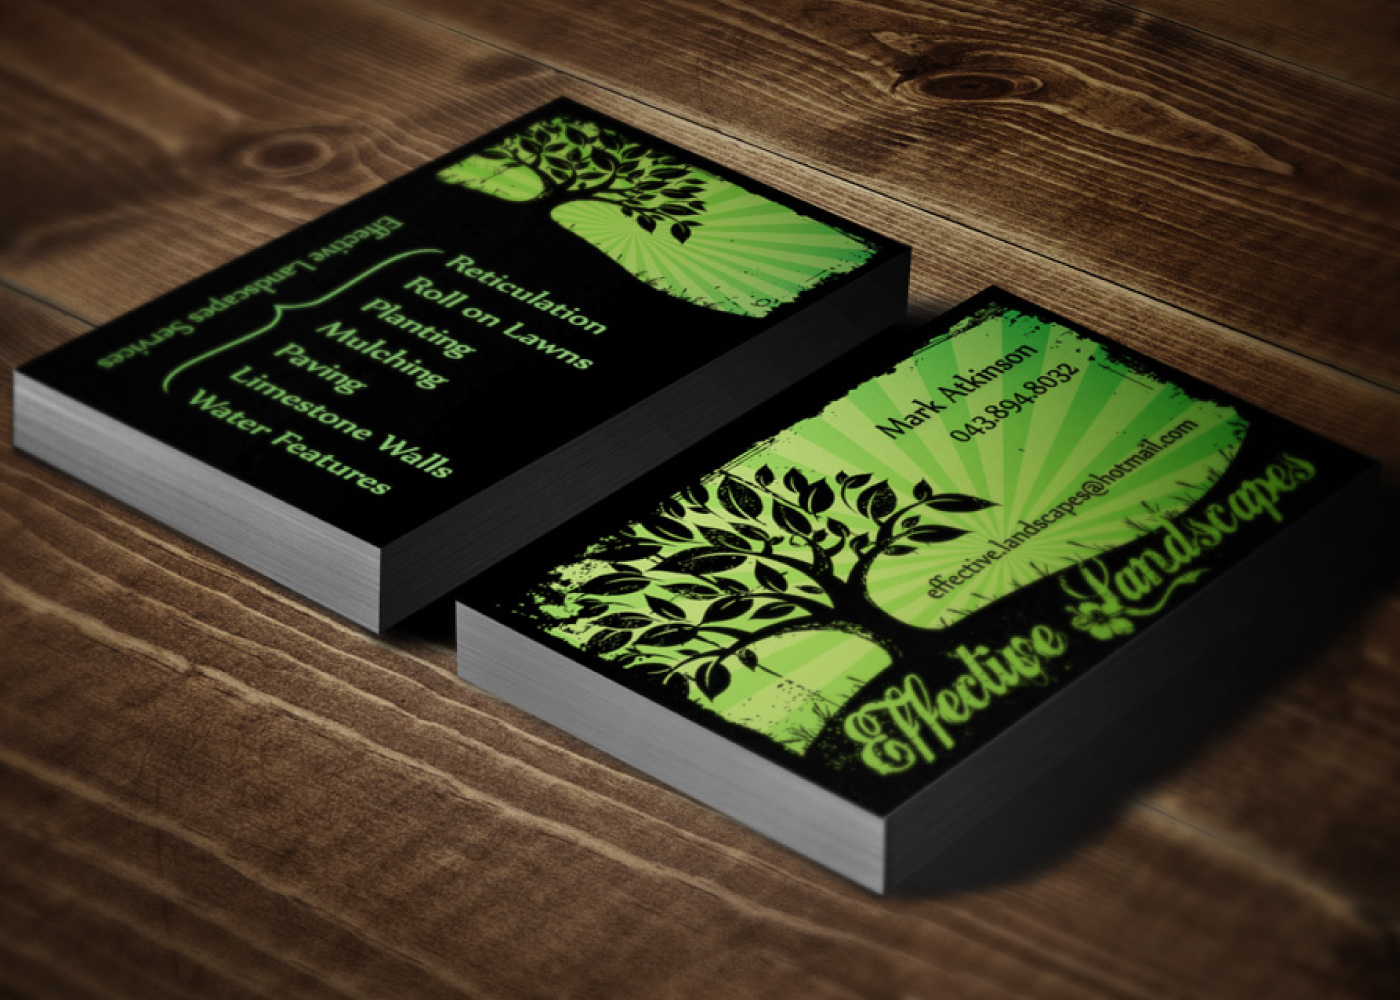 Landscaping business cards samplesandscape design how to make your lovely landscaping business cards ideas business card ideas creative business card landscaper landscaping business cards colourmoves